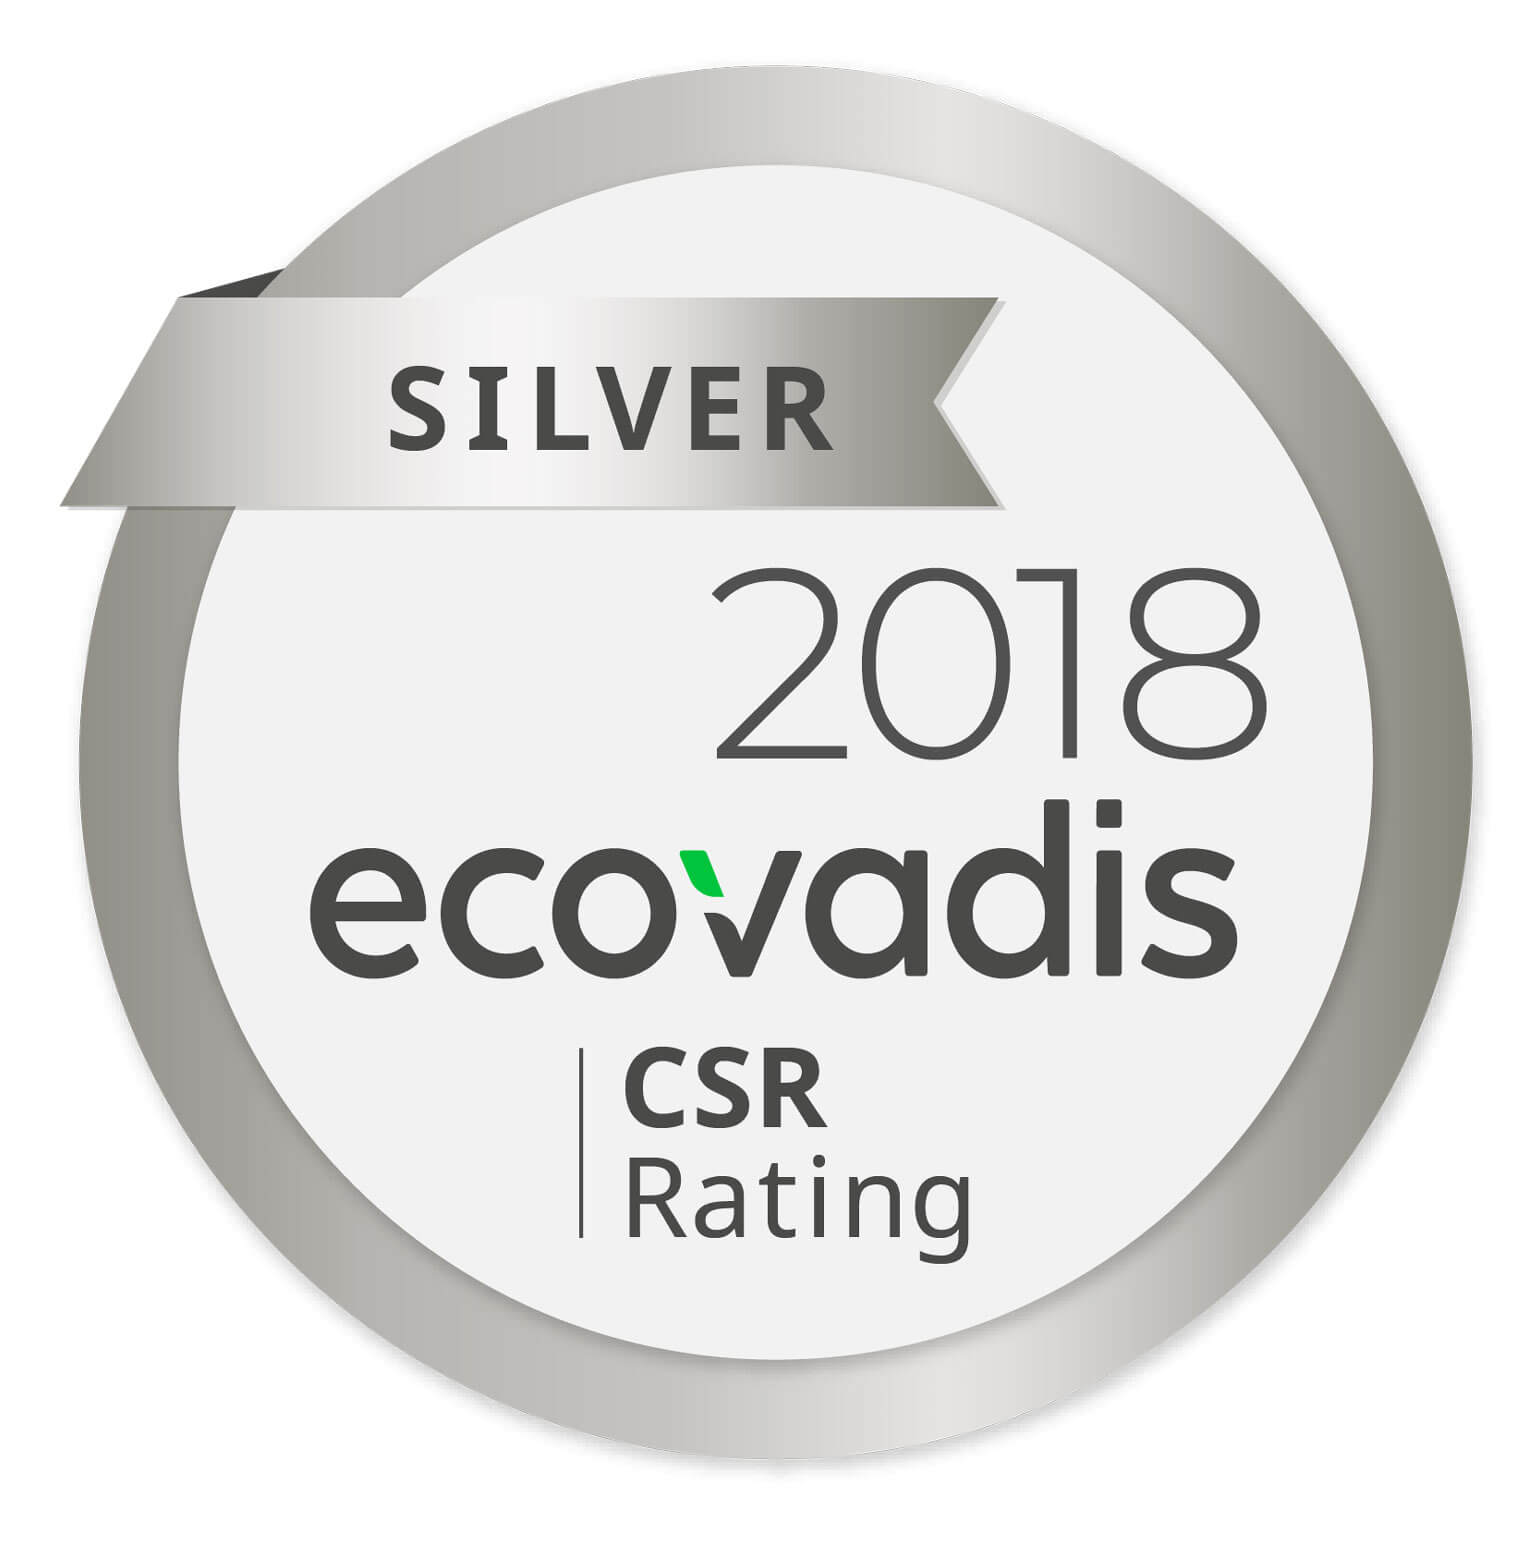 Ecovadis CSR Silber 2018 - Rating